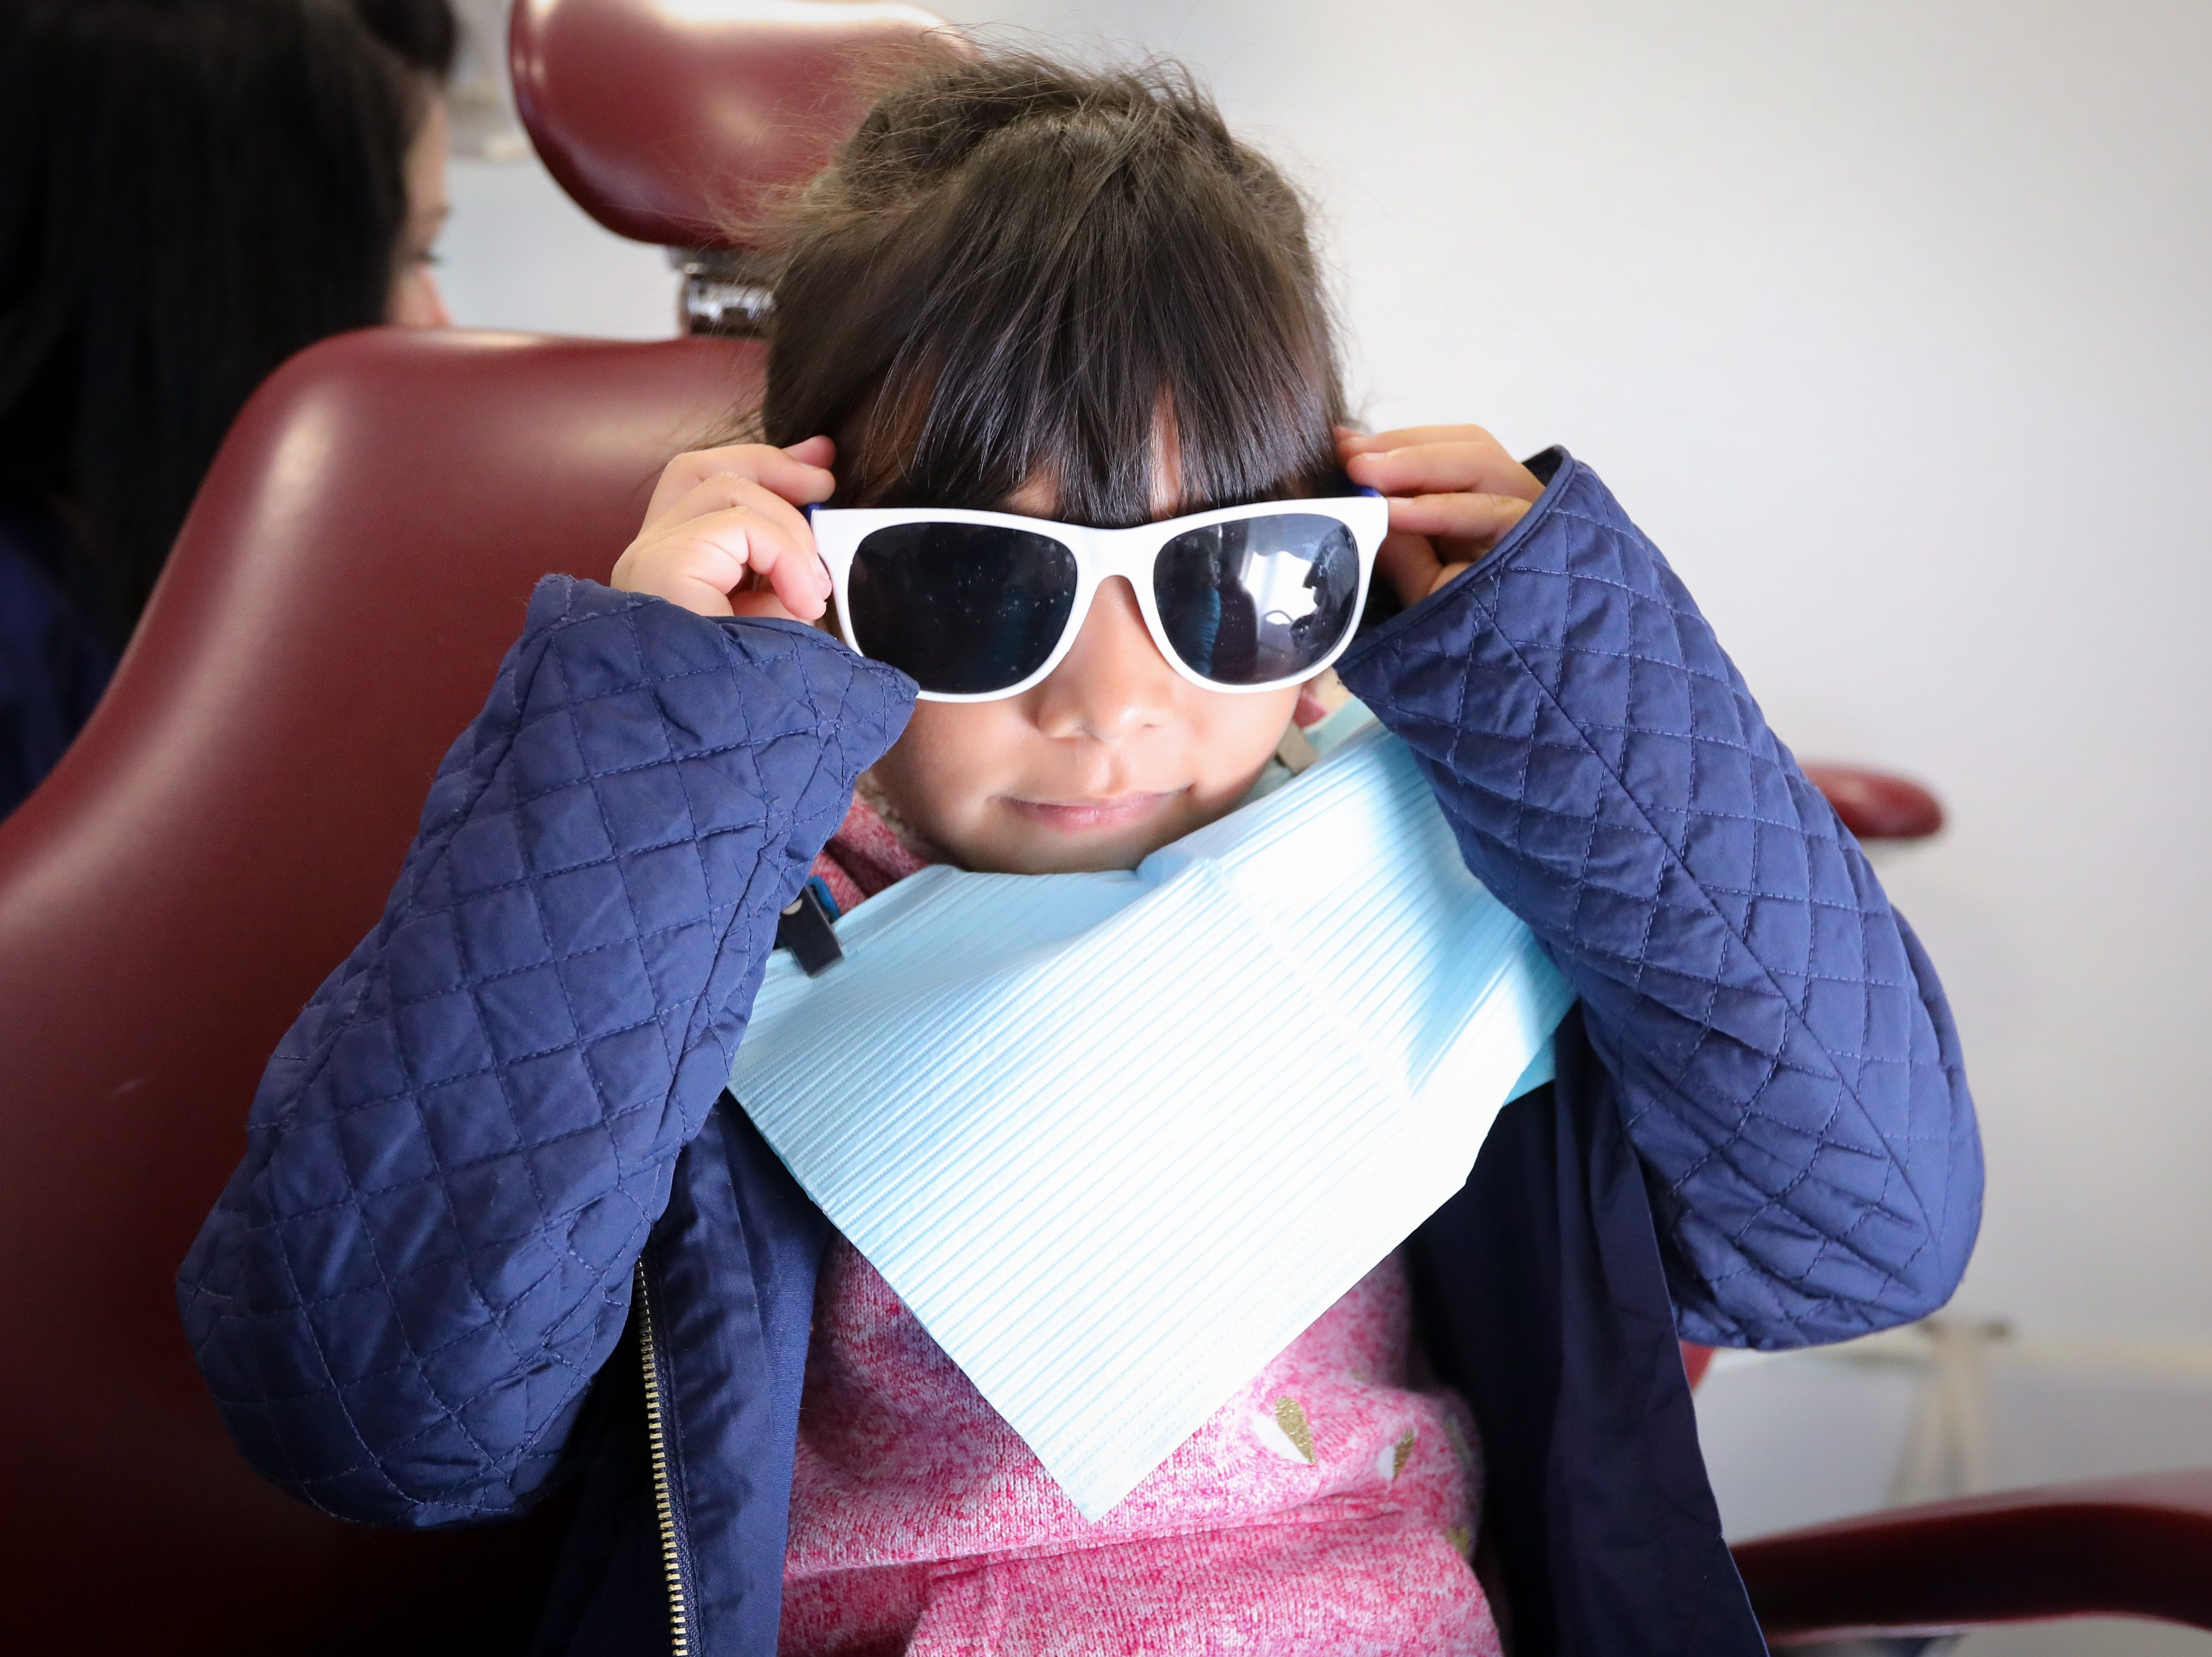 Angela Alvarez, a Karen Acres kindergartner, puts on her safety sunglasses prior to having her teeth inspected in the Dental Connections mobile unit at Karen Acres Elementary School on Nov. 15, 2018 in Urbandale, Iowa. Dental Connections is a mobile unit that provides basic dental check-ups for students.